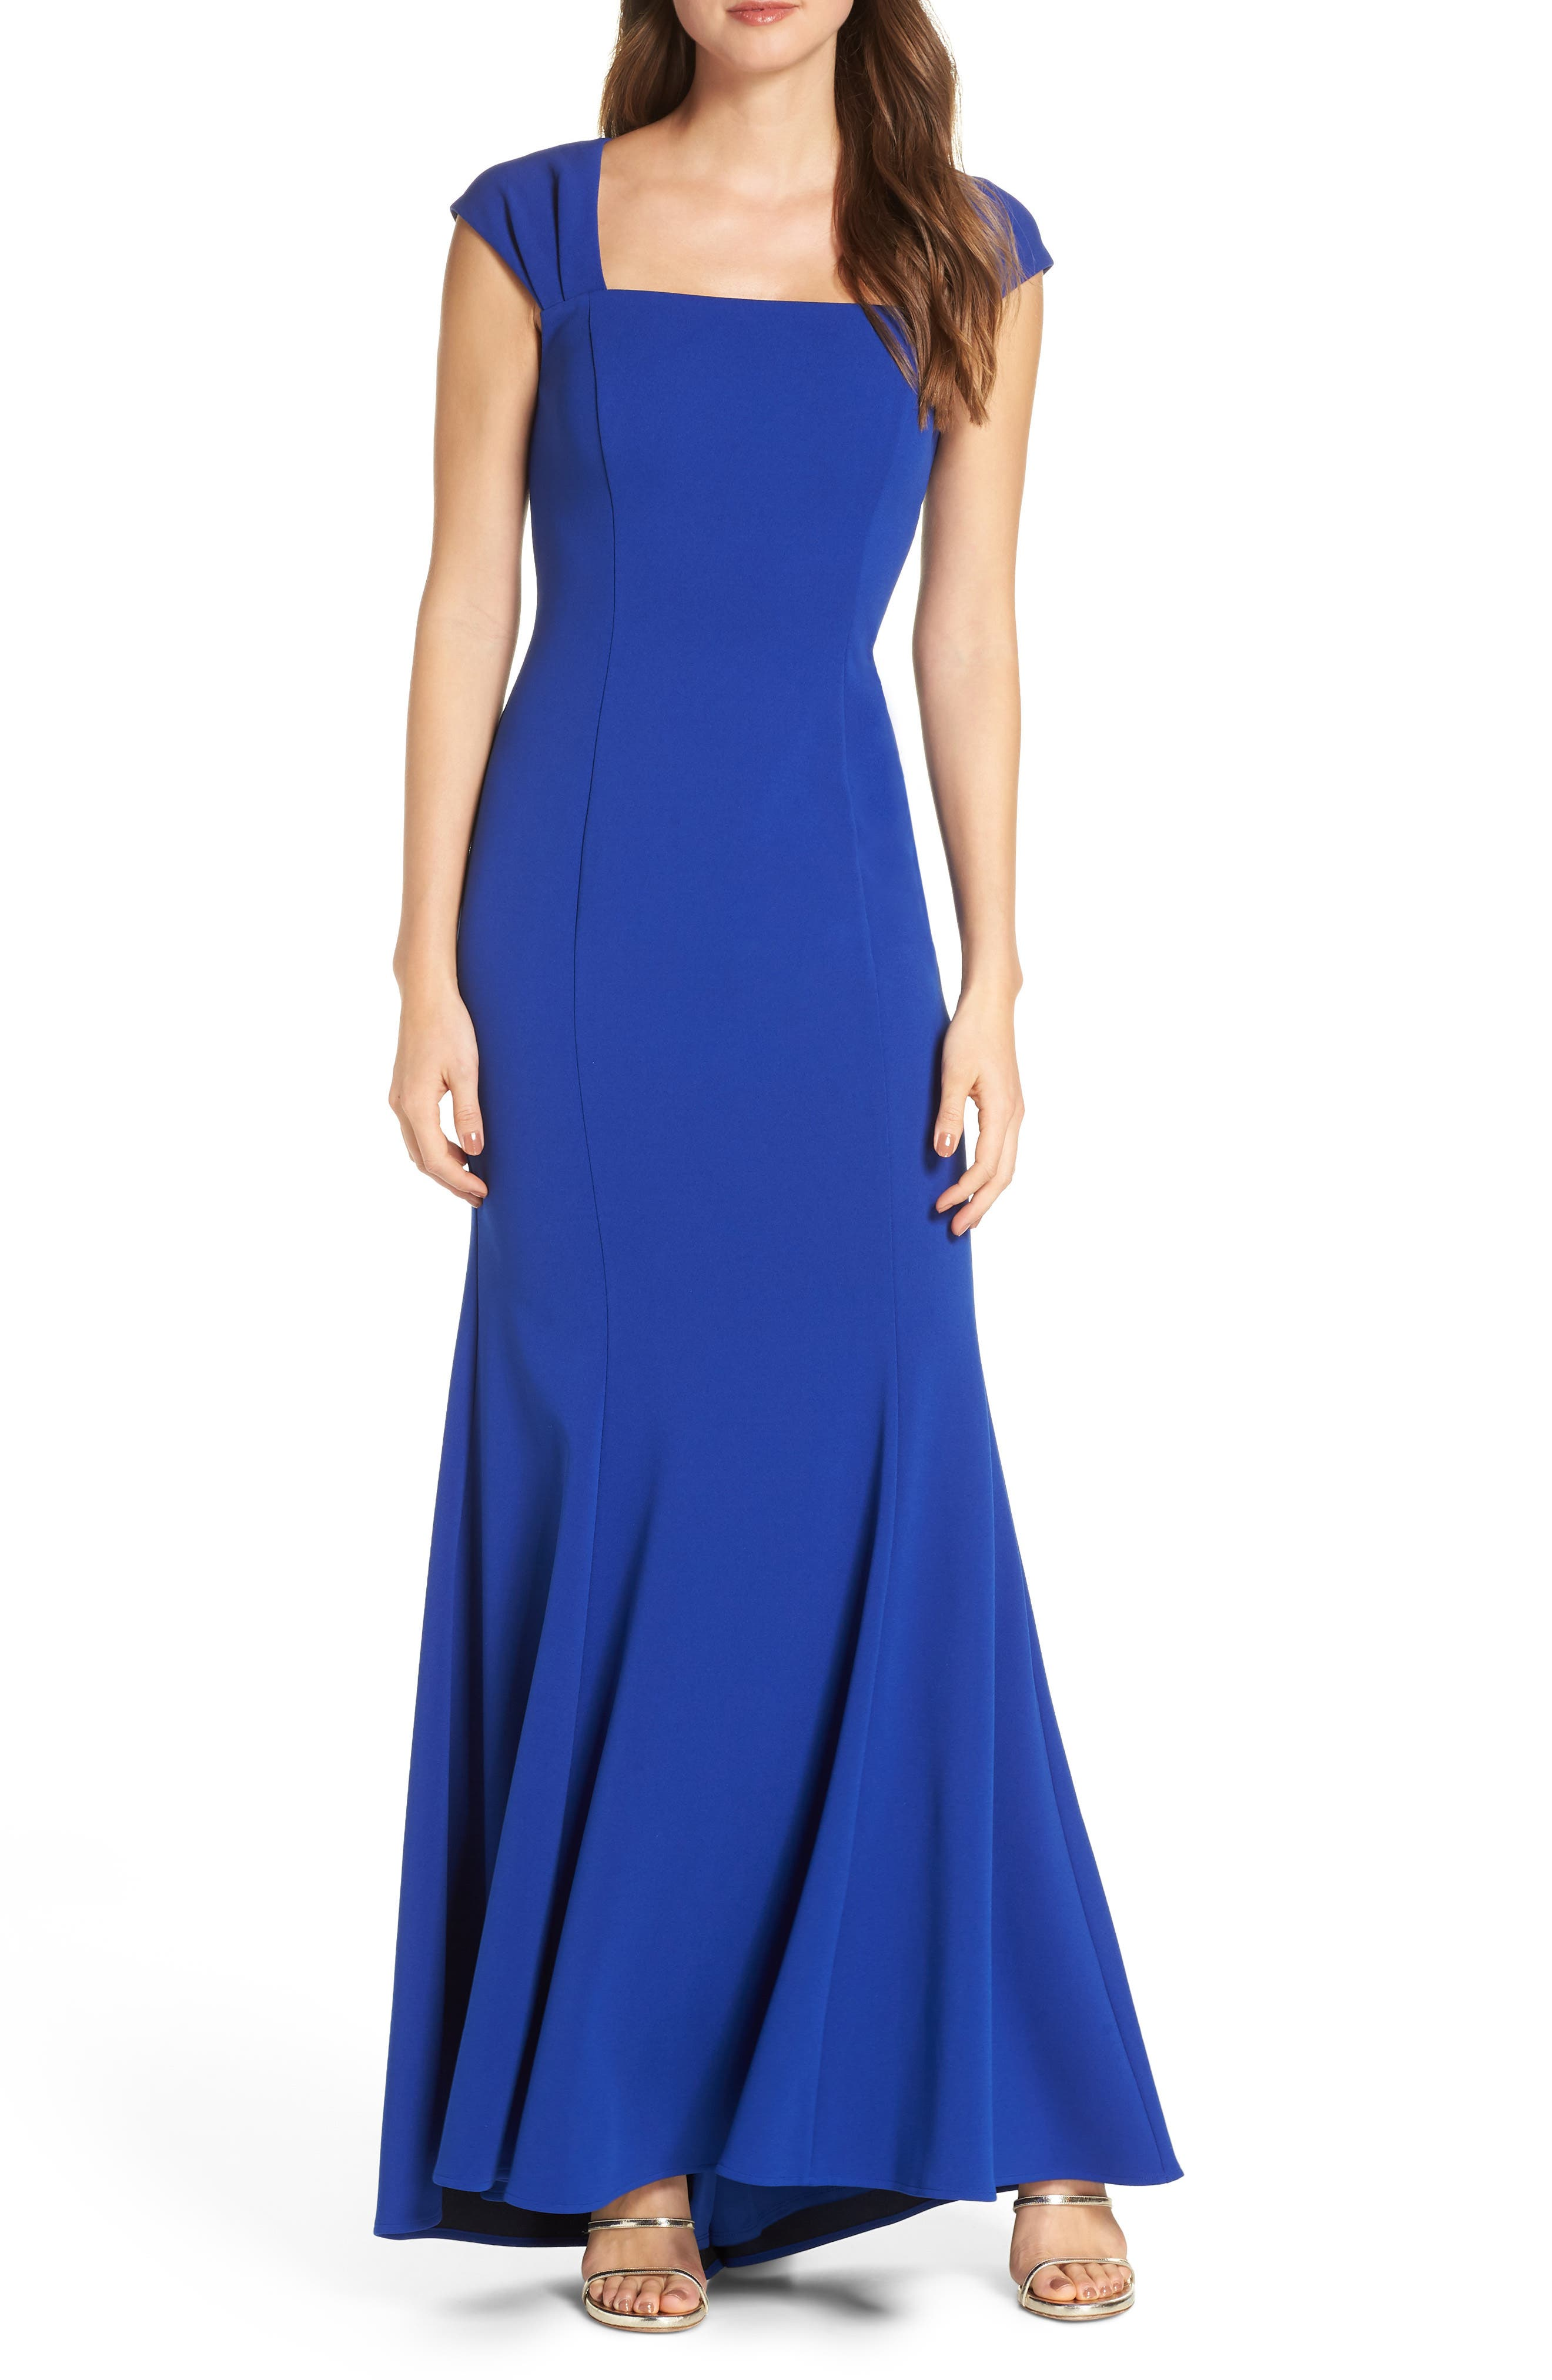 Eliza J Square Neck Scuba Crepe Evening Dress, Blue